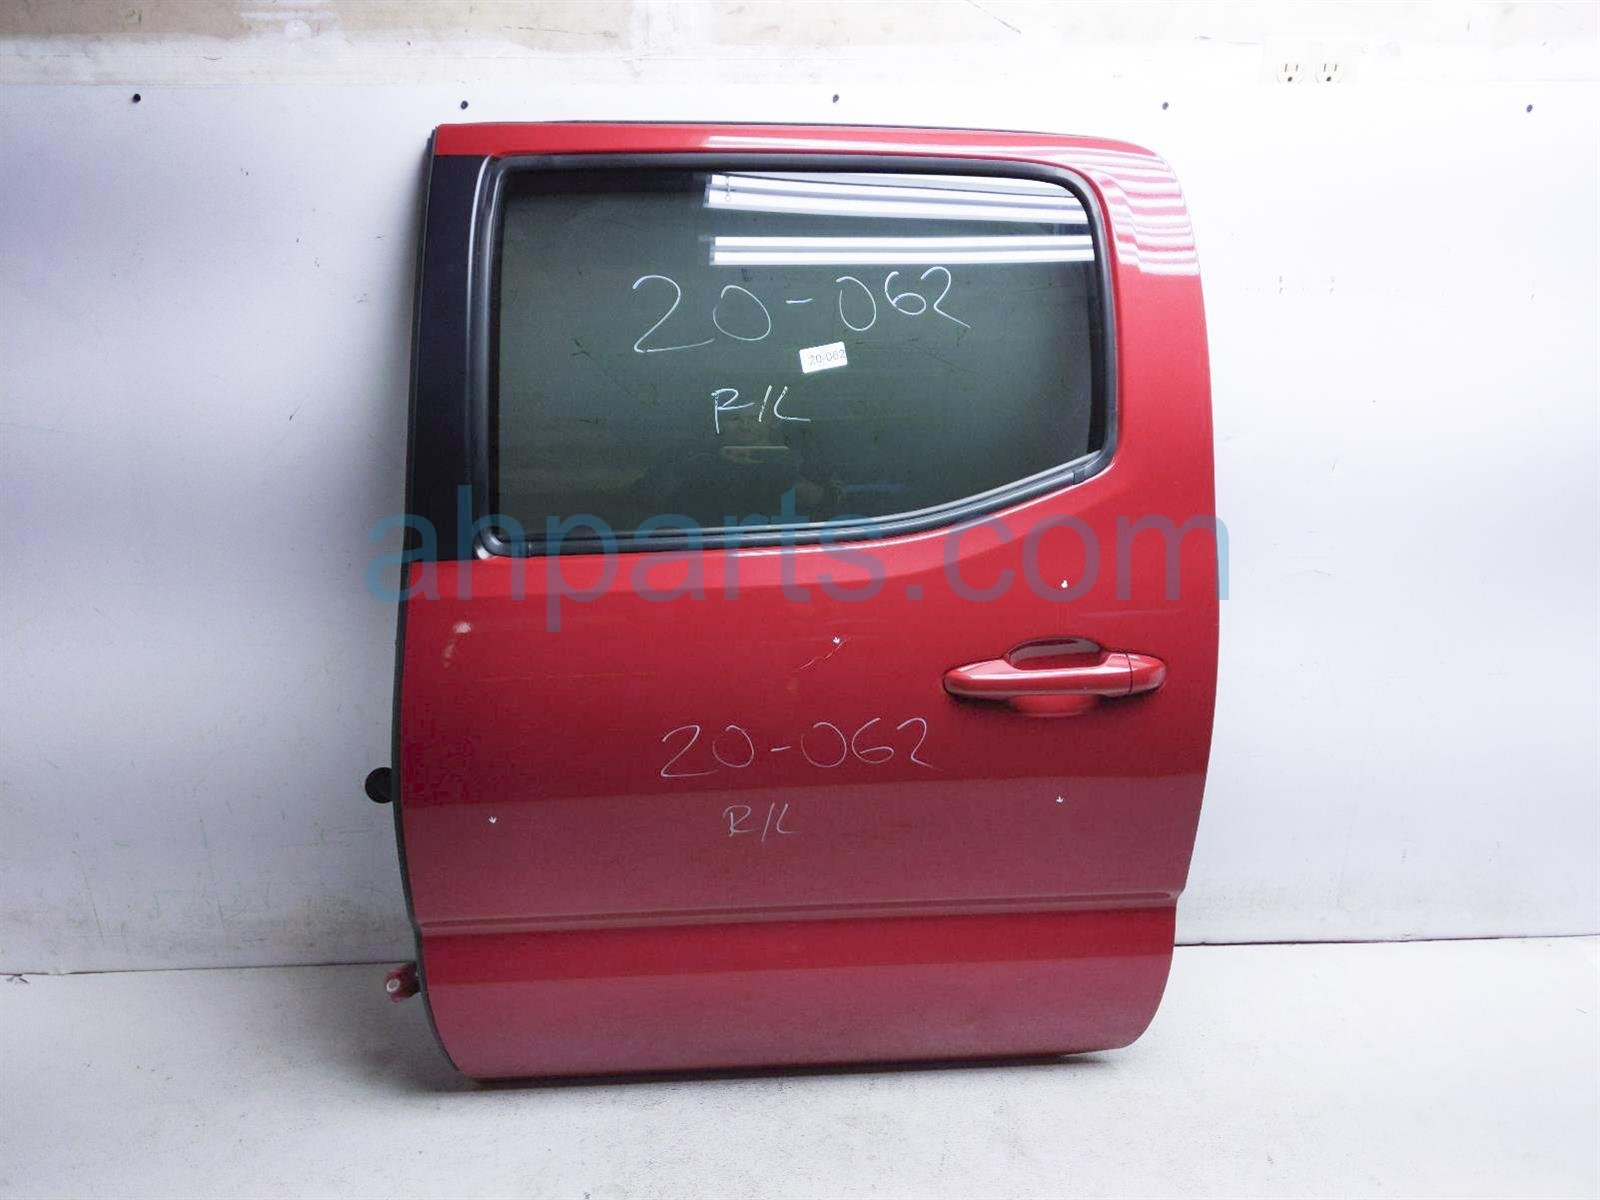 2017 Toyota Tacoma Rear Driver Door   Red   No Inside Panel 67004 04120 Replacement